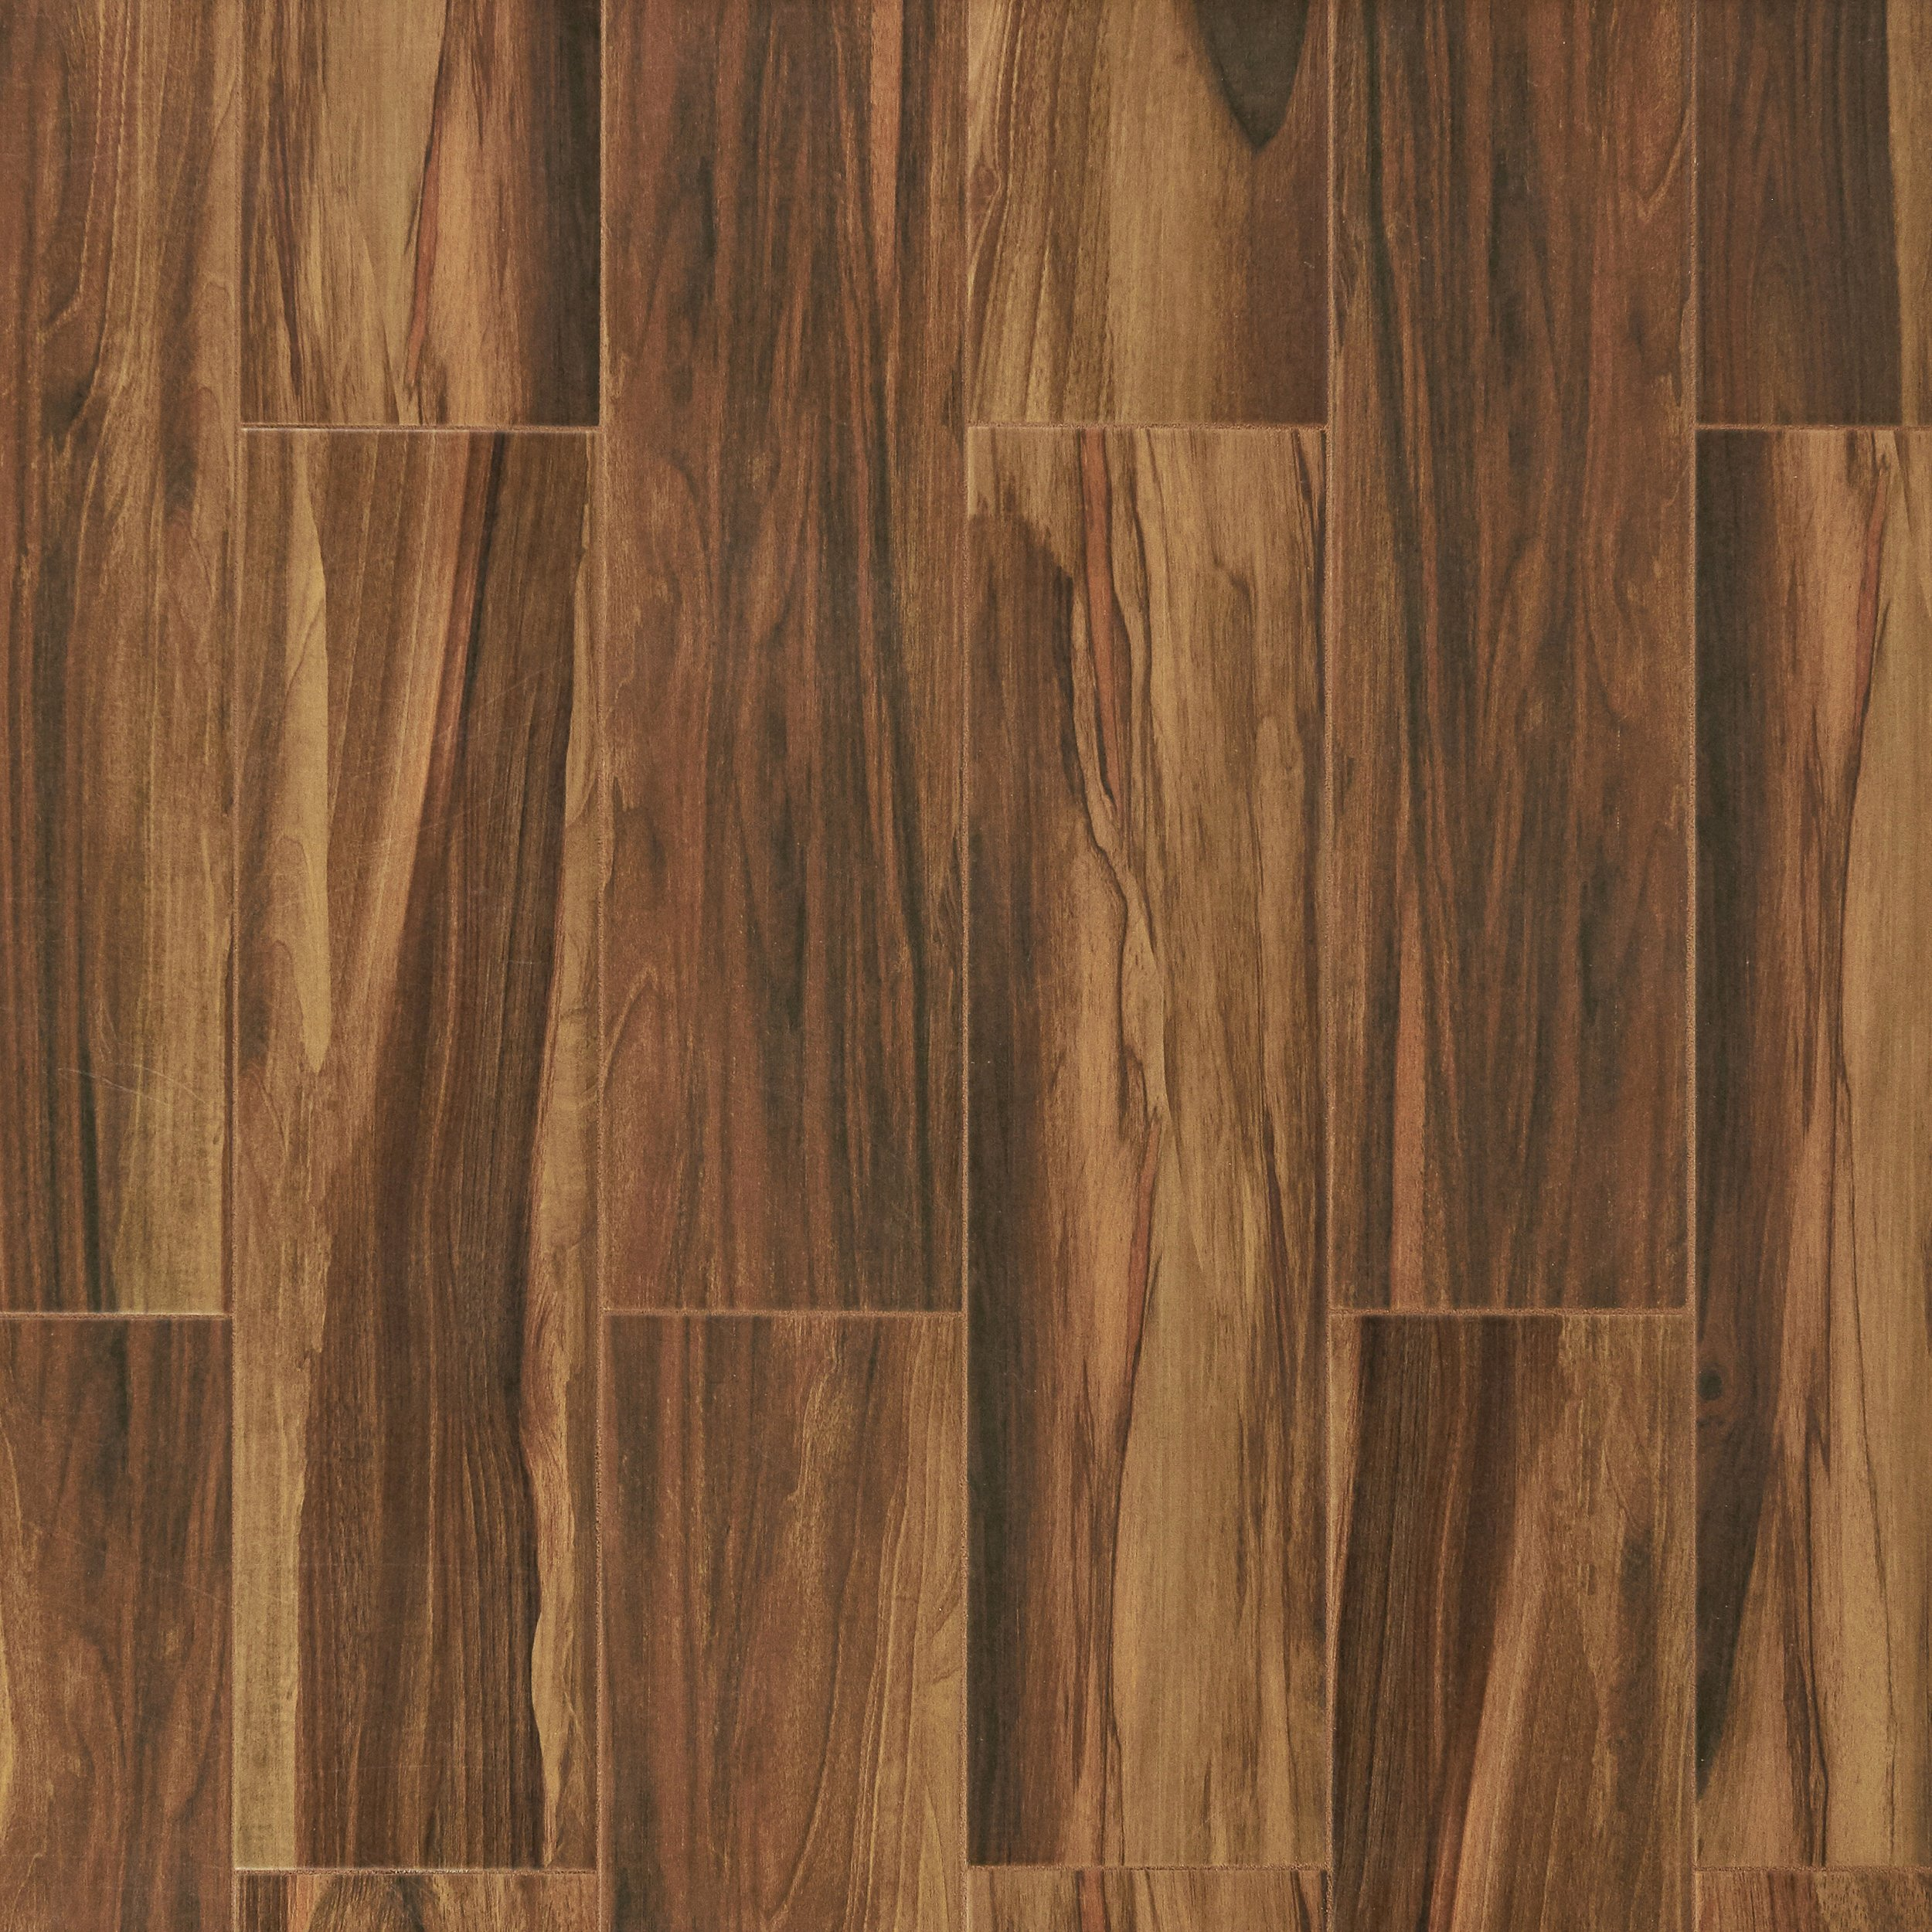 Porcelain Tile Wood Plank: Marina Walnut Wood Plank Porcelain Tile